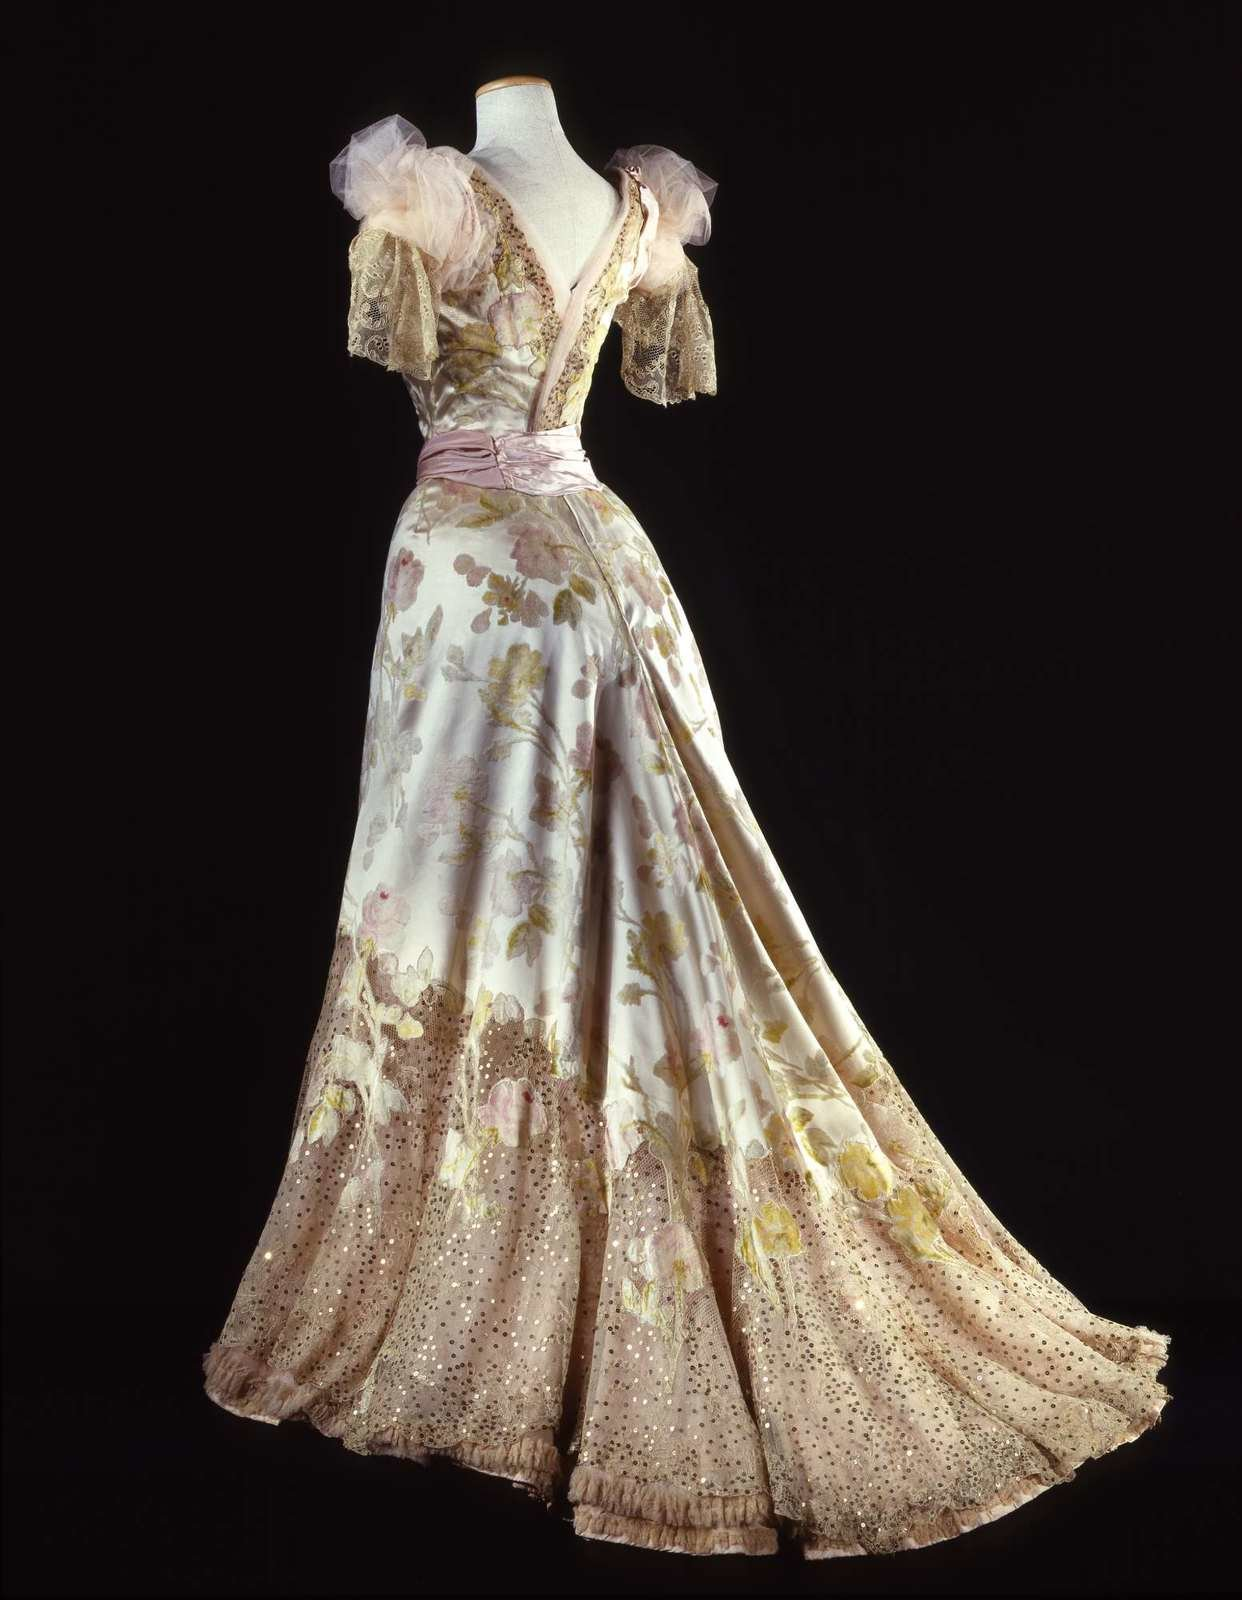 Three-piece ball gown in 'velour de sabre' (back), ca. 1902, Charles Frederick Worth, Galleria del Costume di Palazzo Pitti, In Copyright